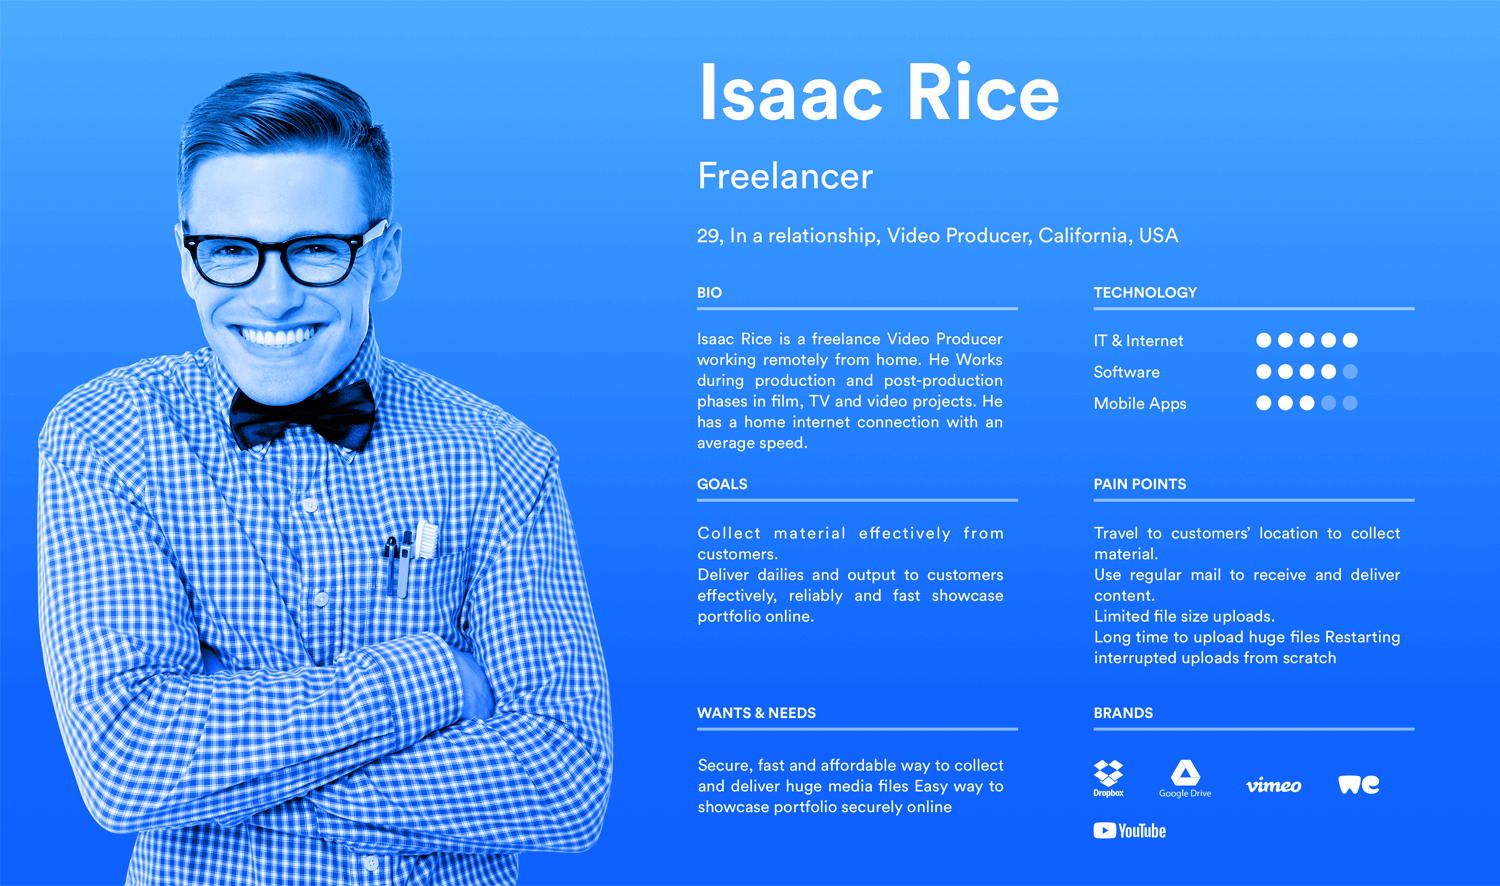 User persona templates - the freelancer